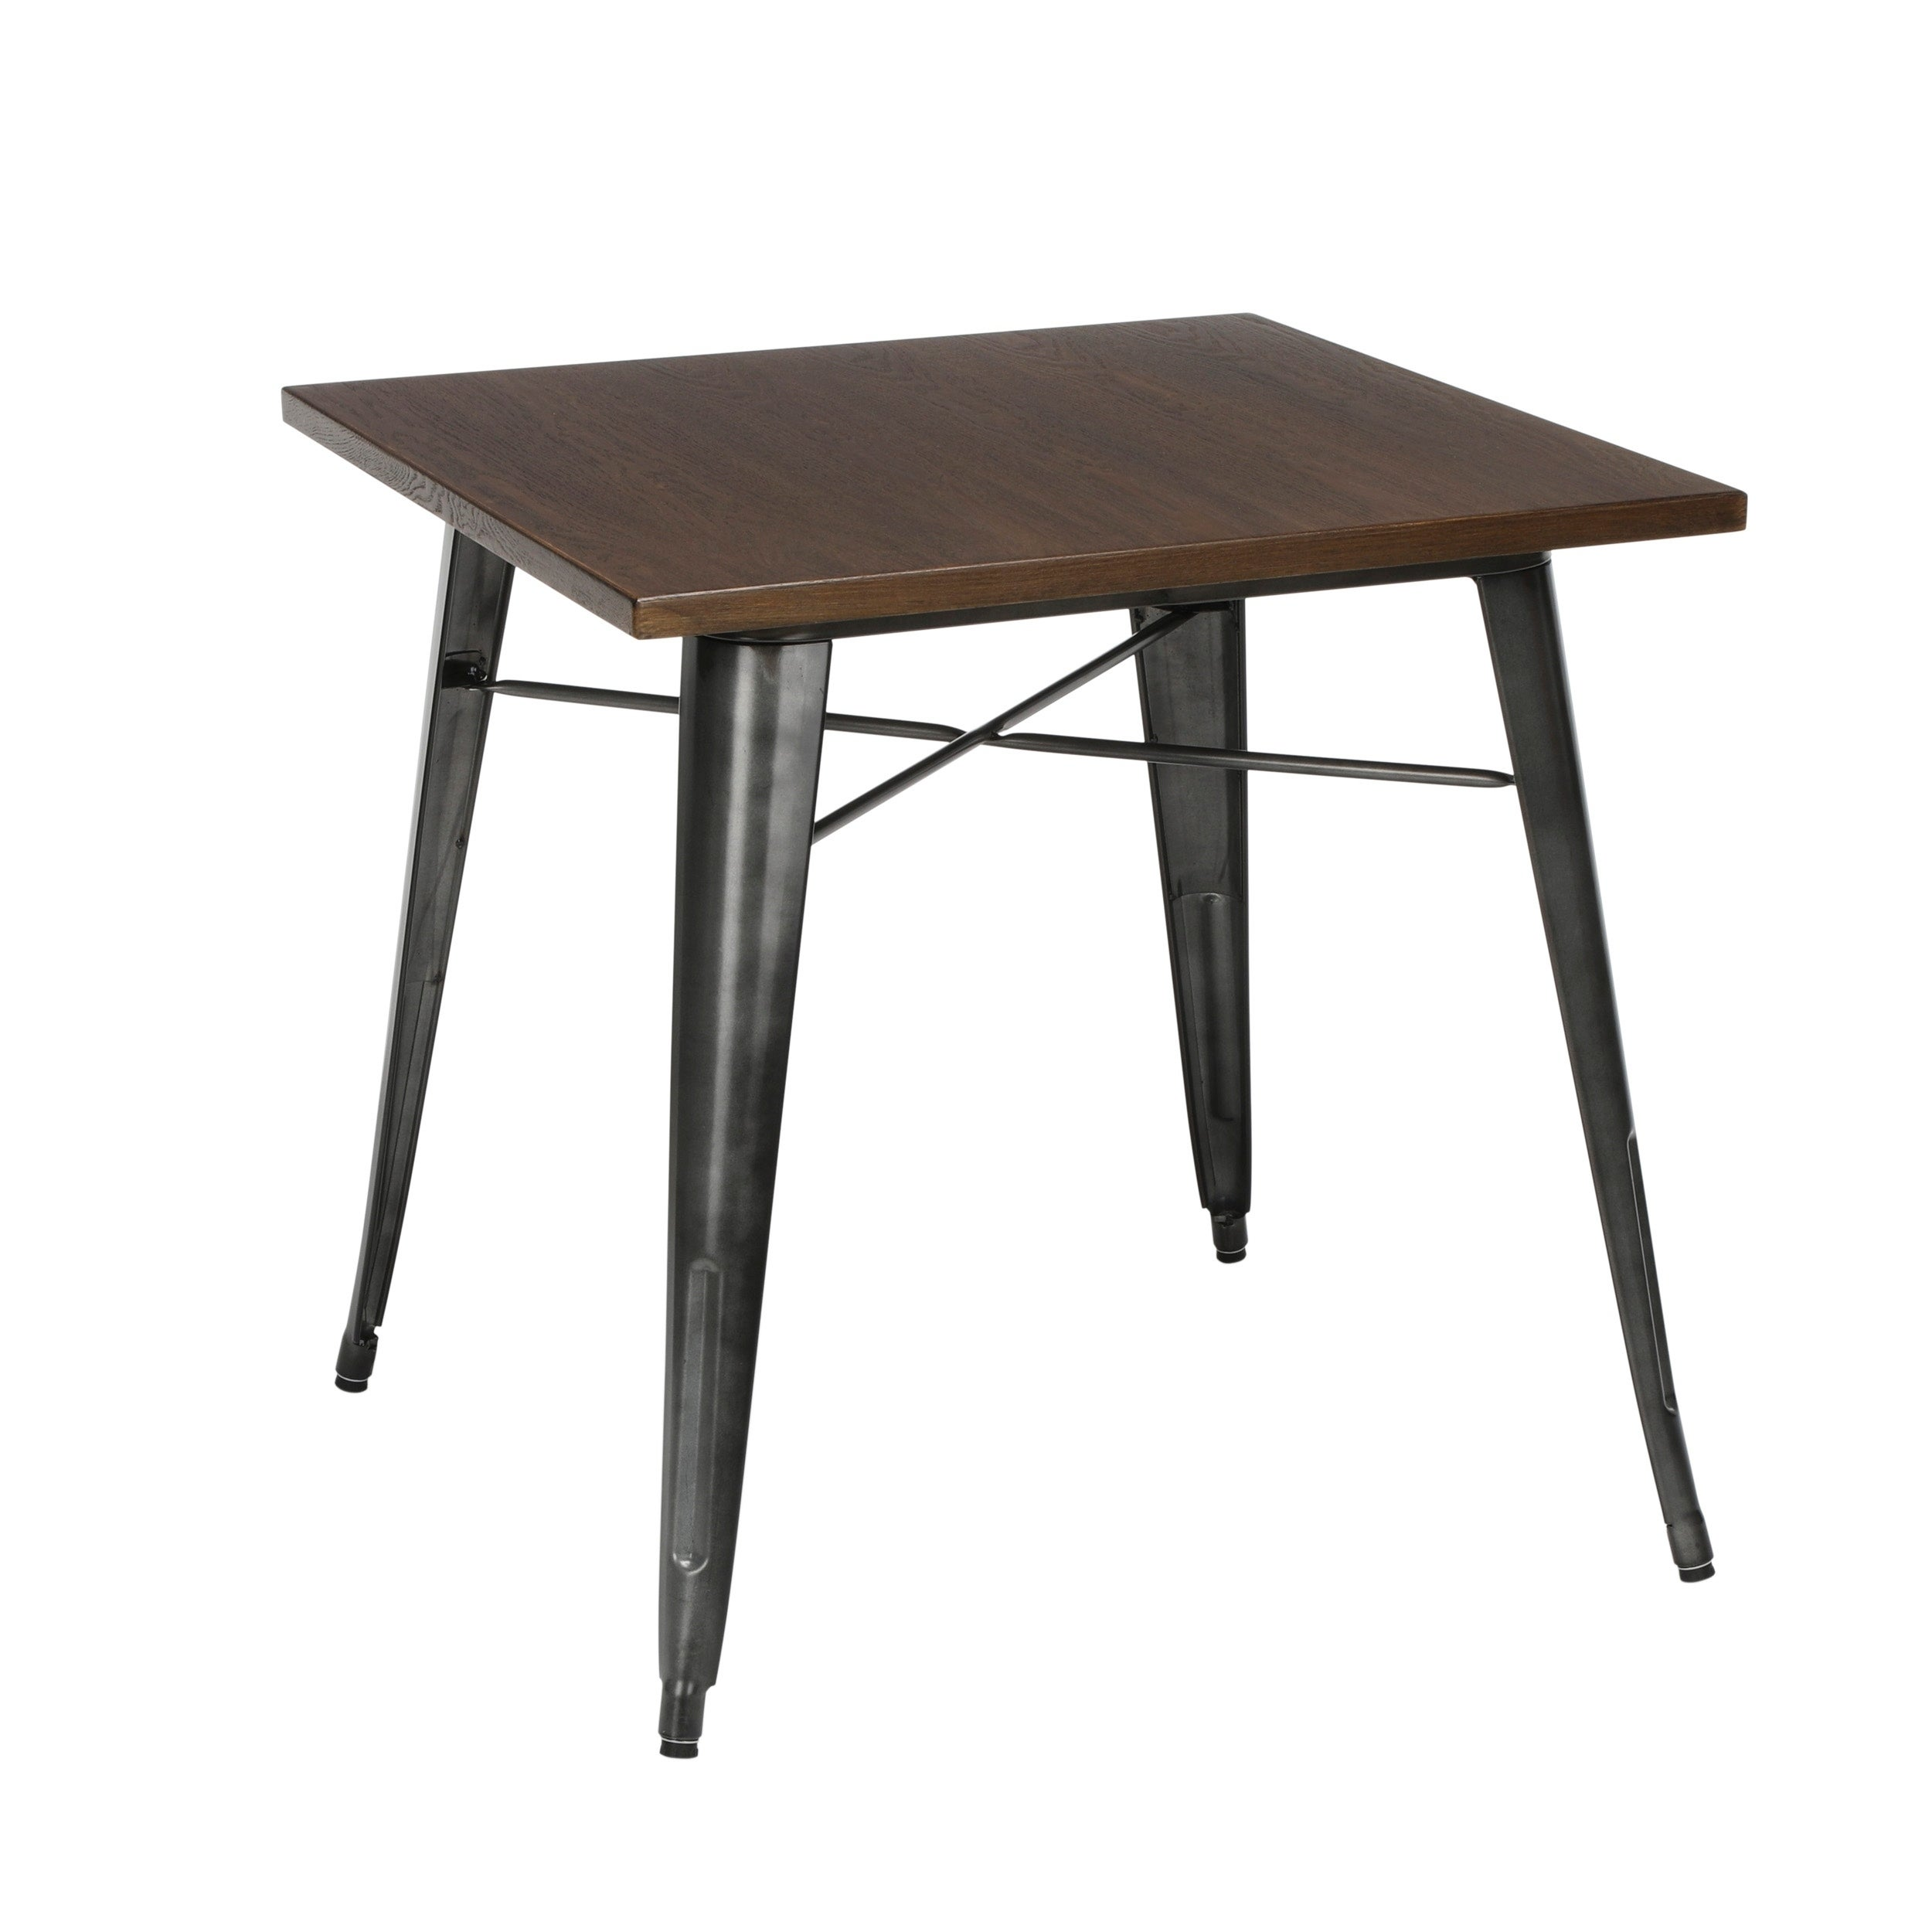 Shop Ofm 161 Collection Industrial Modern 30 Square Dining Table